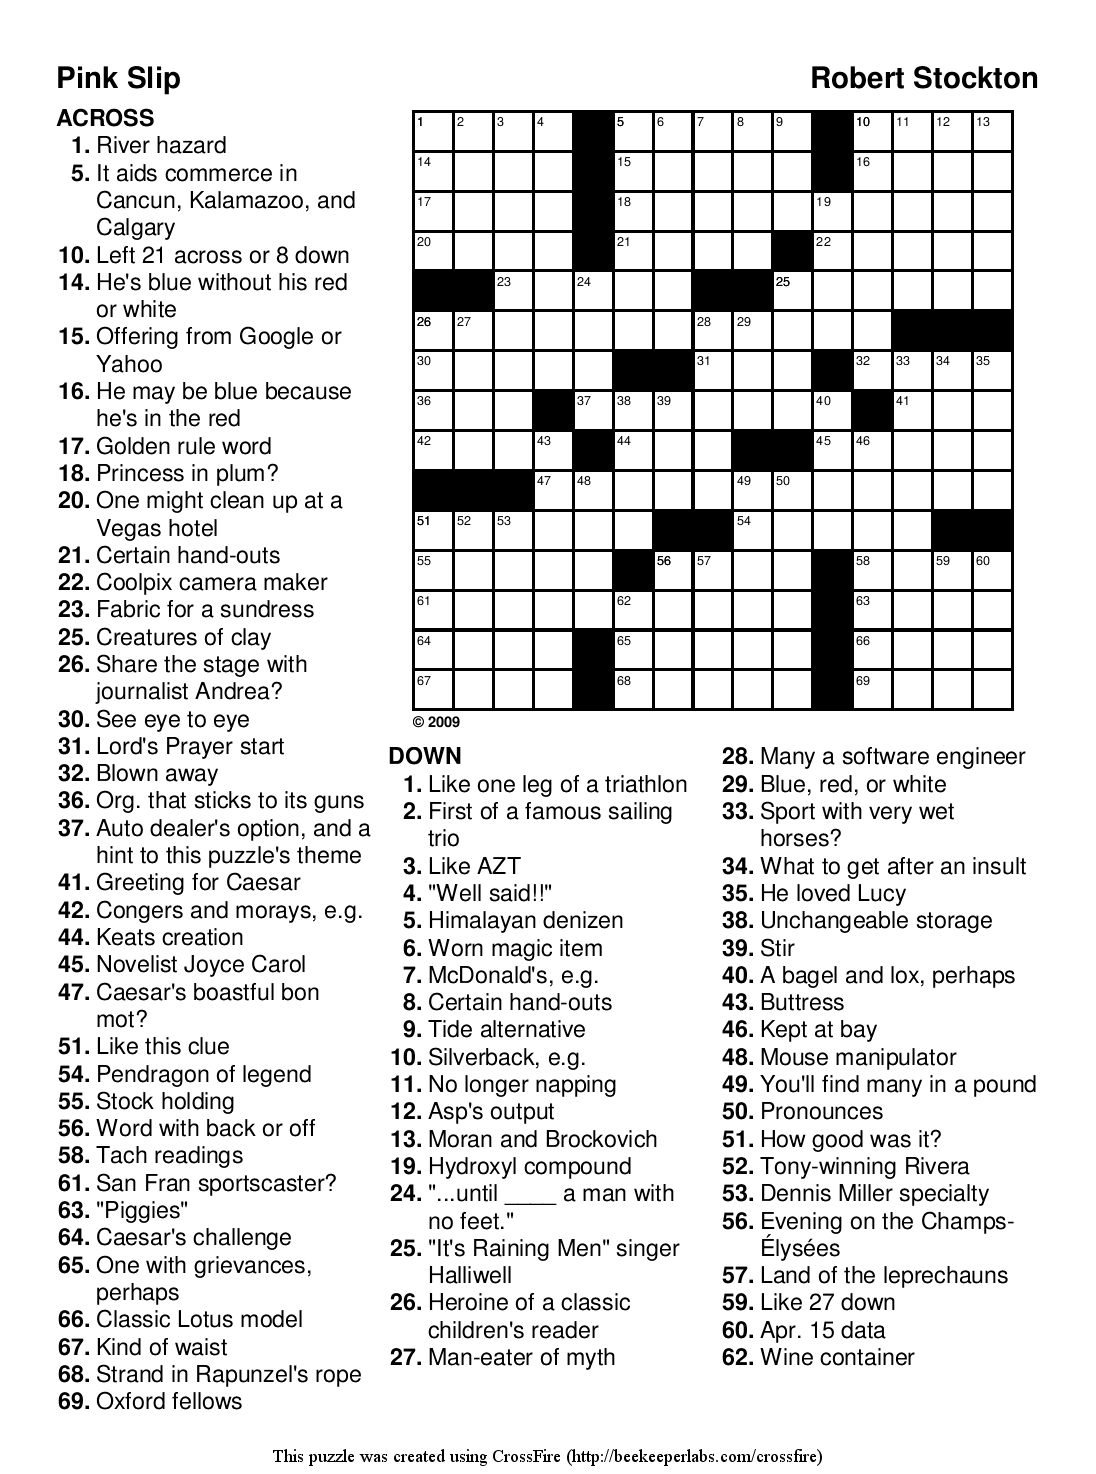 Printable Puzzles For Adults | Easy Word Puzzles Printable Festivals - Printable Crossword Puzzles For Elderly